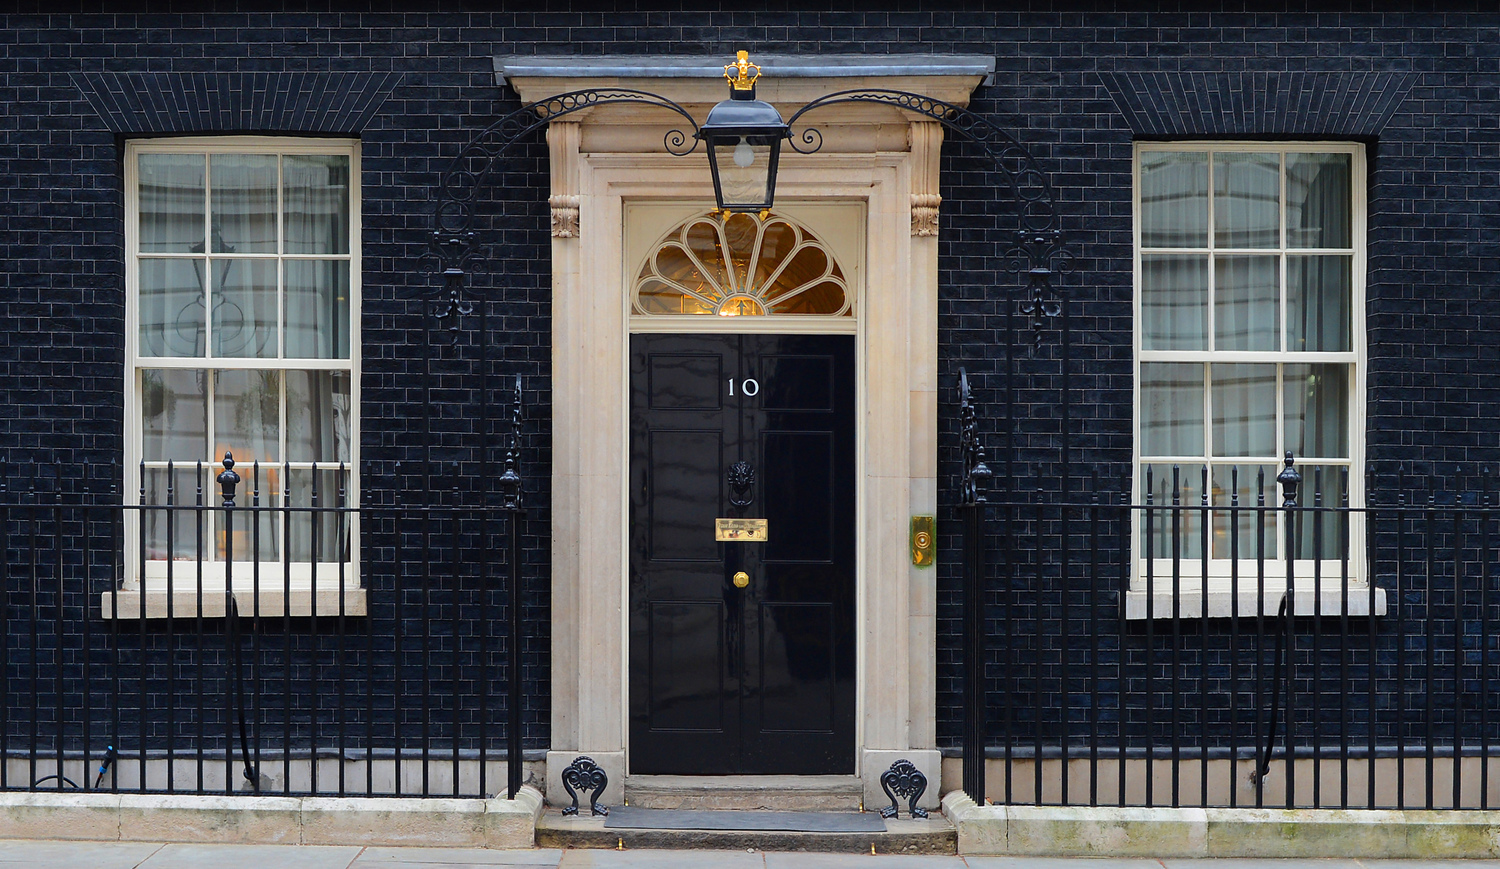 No 10 Downing Street - an Open Govt image of the iconic black door of the Prime Minister's residence.